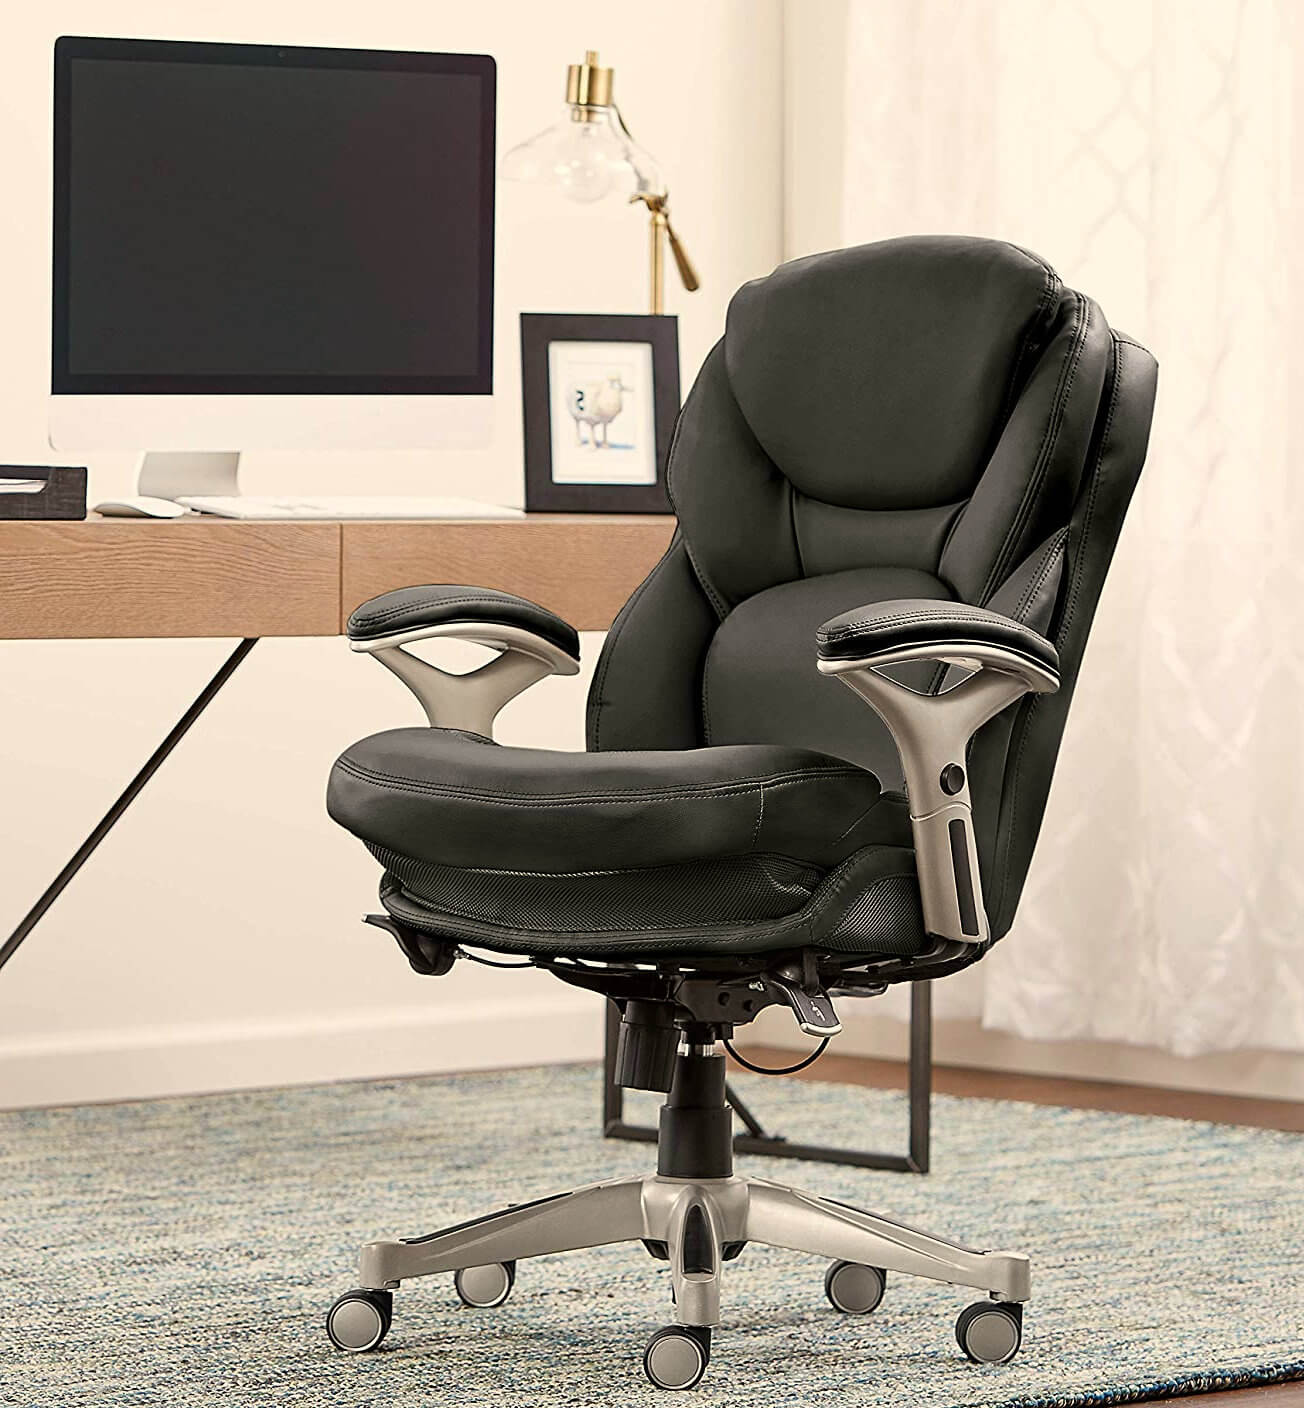 Serta Works Executive Ergonomic Office Chair Review ✔️ goStanding